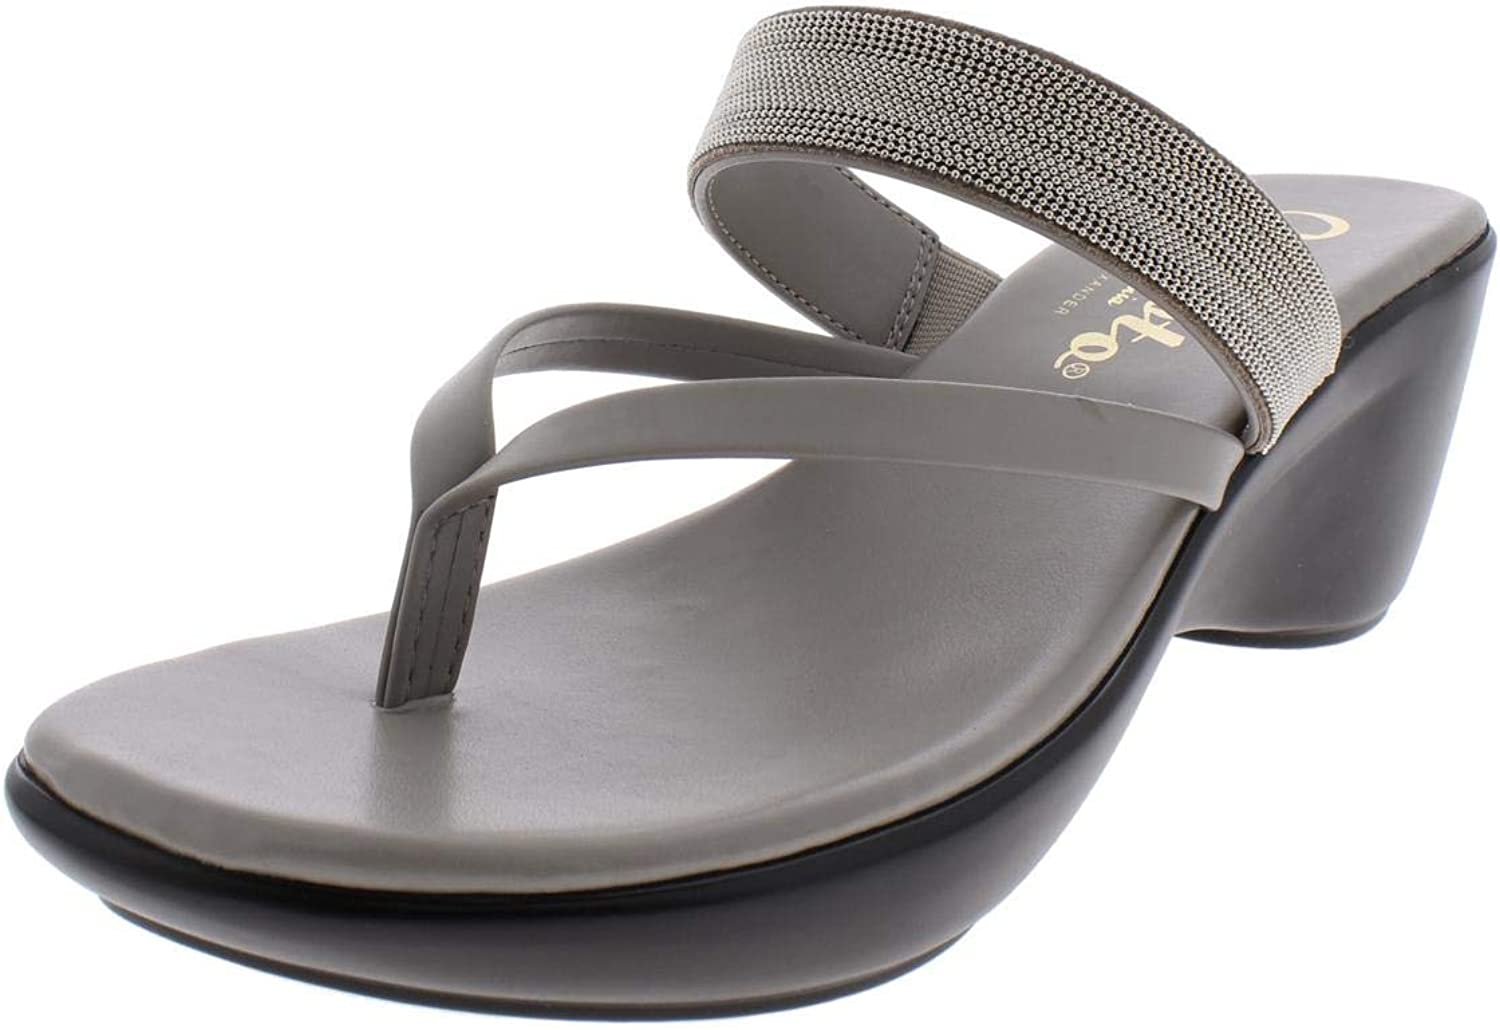 Callisto of California Womens Elora Faux Leather Thong Flip-Flops